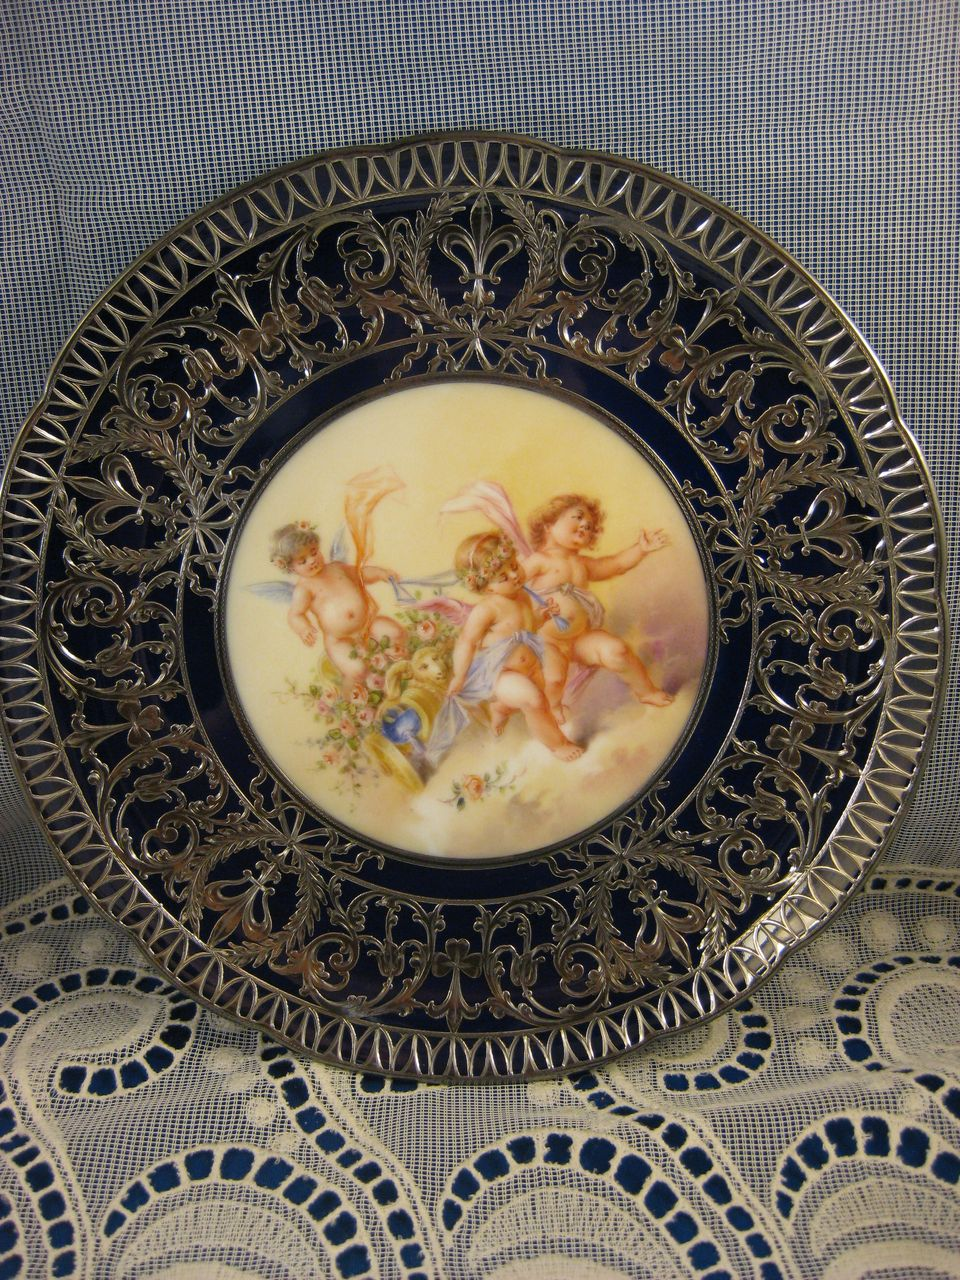 Royal Vienna Style ~ Cherub Handpainted Plate ~ Putti Sterling Silver Overlay